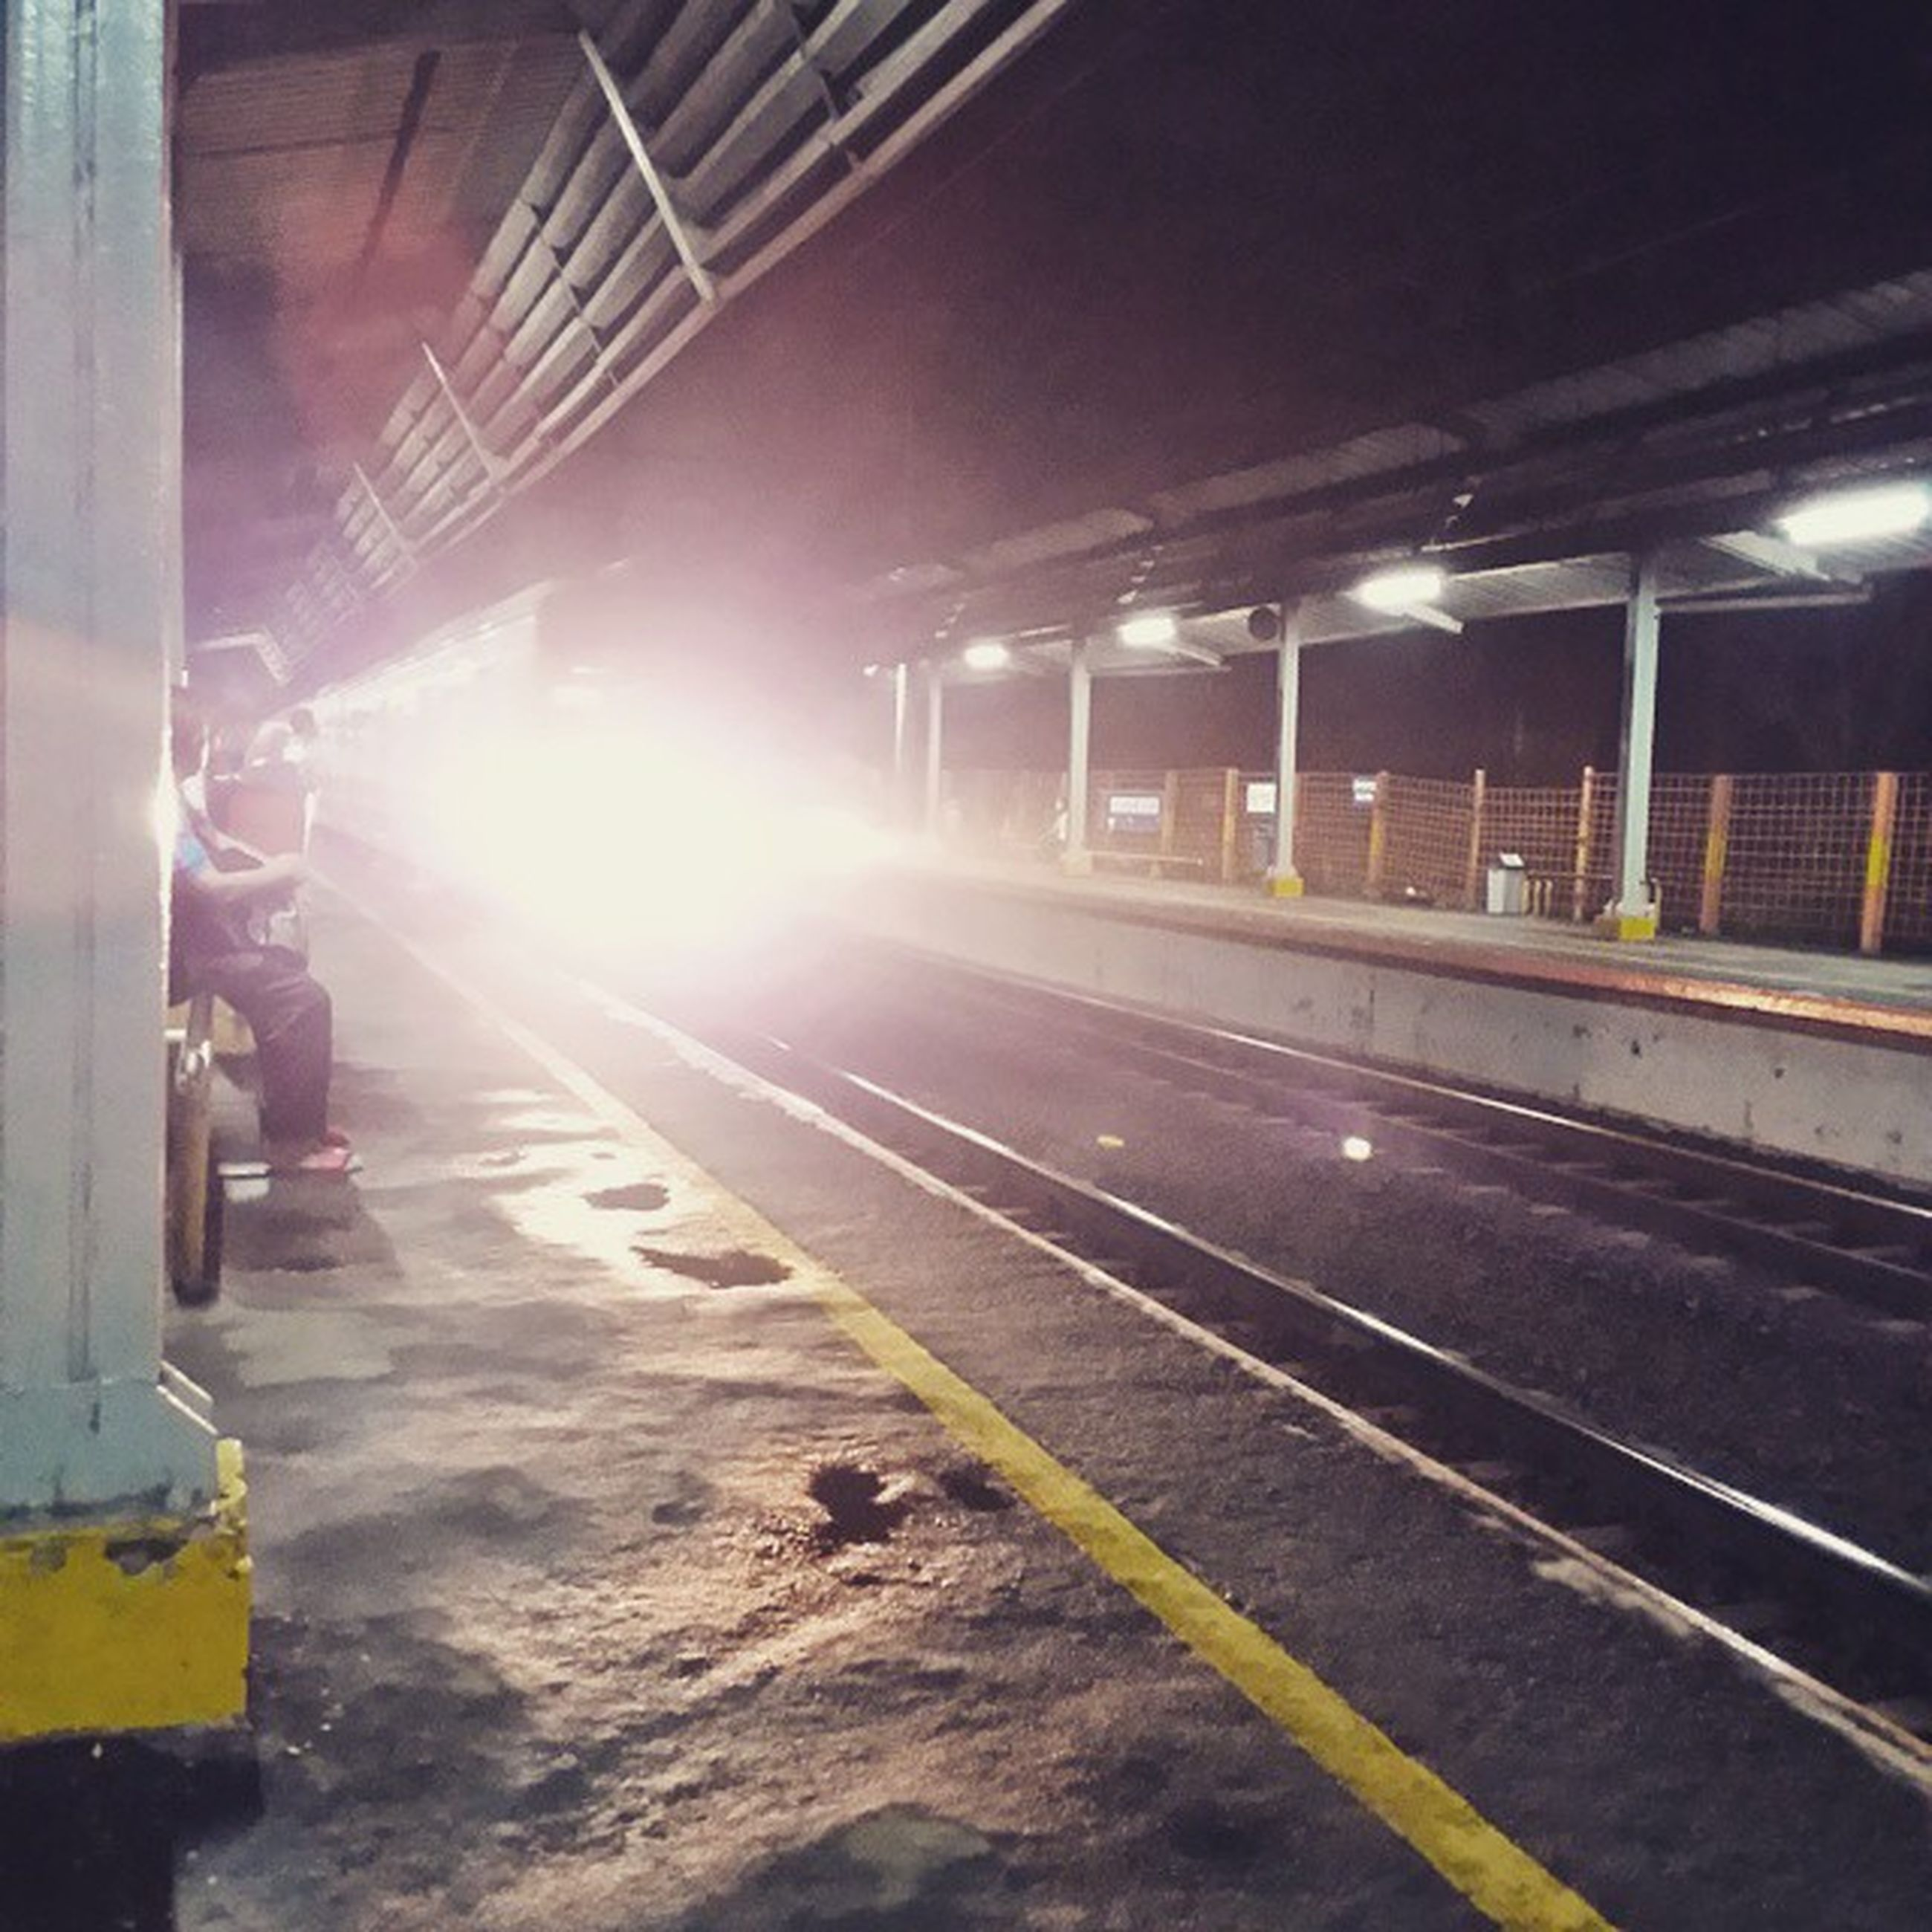 transportation, railroad track, public transportation, railroad station platform, mode of transport, motion, rail transportation, railroad station, blurred motion, illuminated, on the move, travel, speed, road, long exposure, built structure, train - vehicle, city life